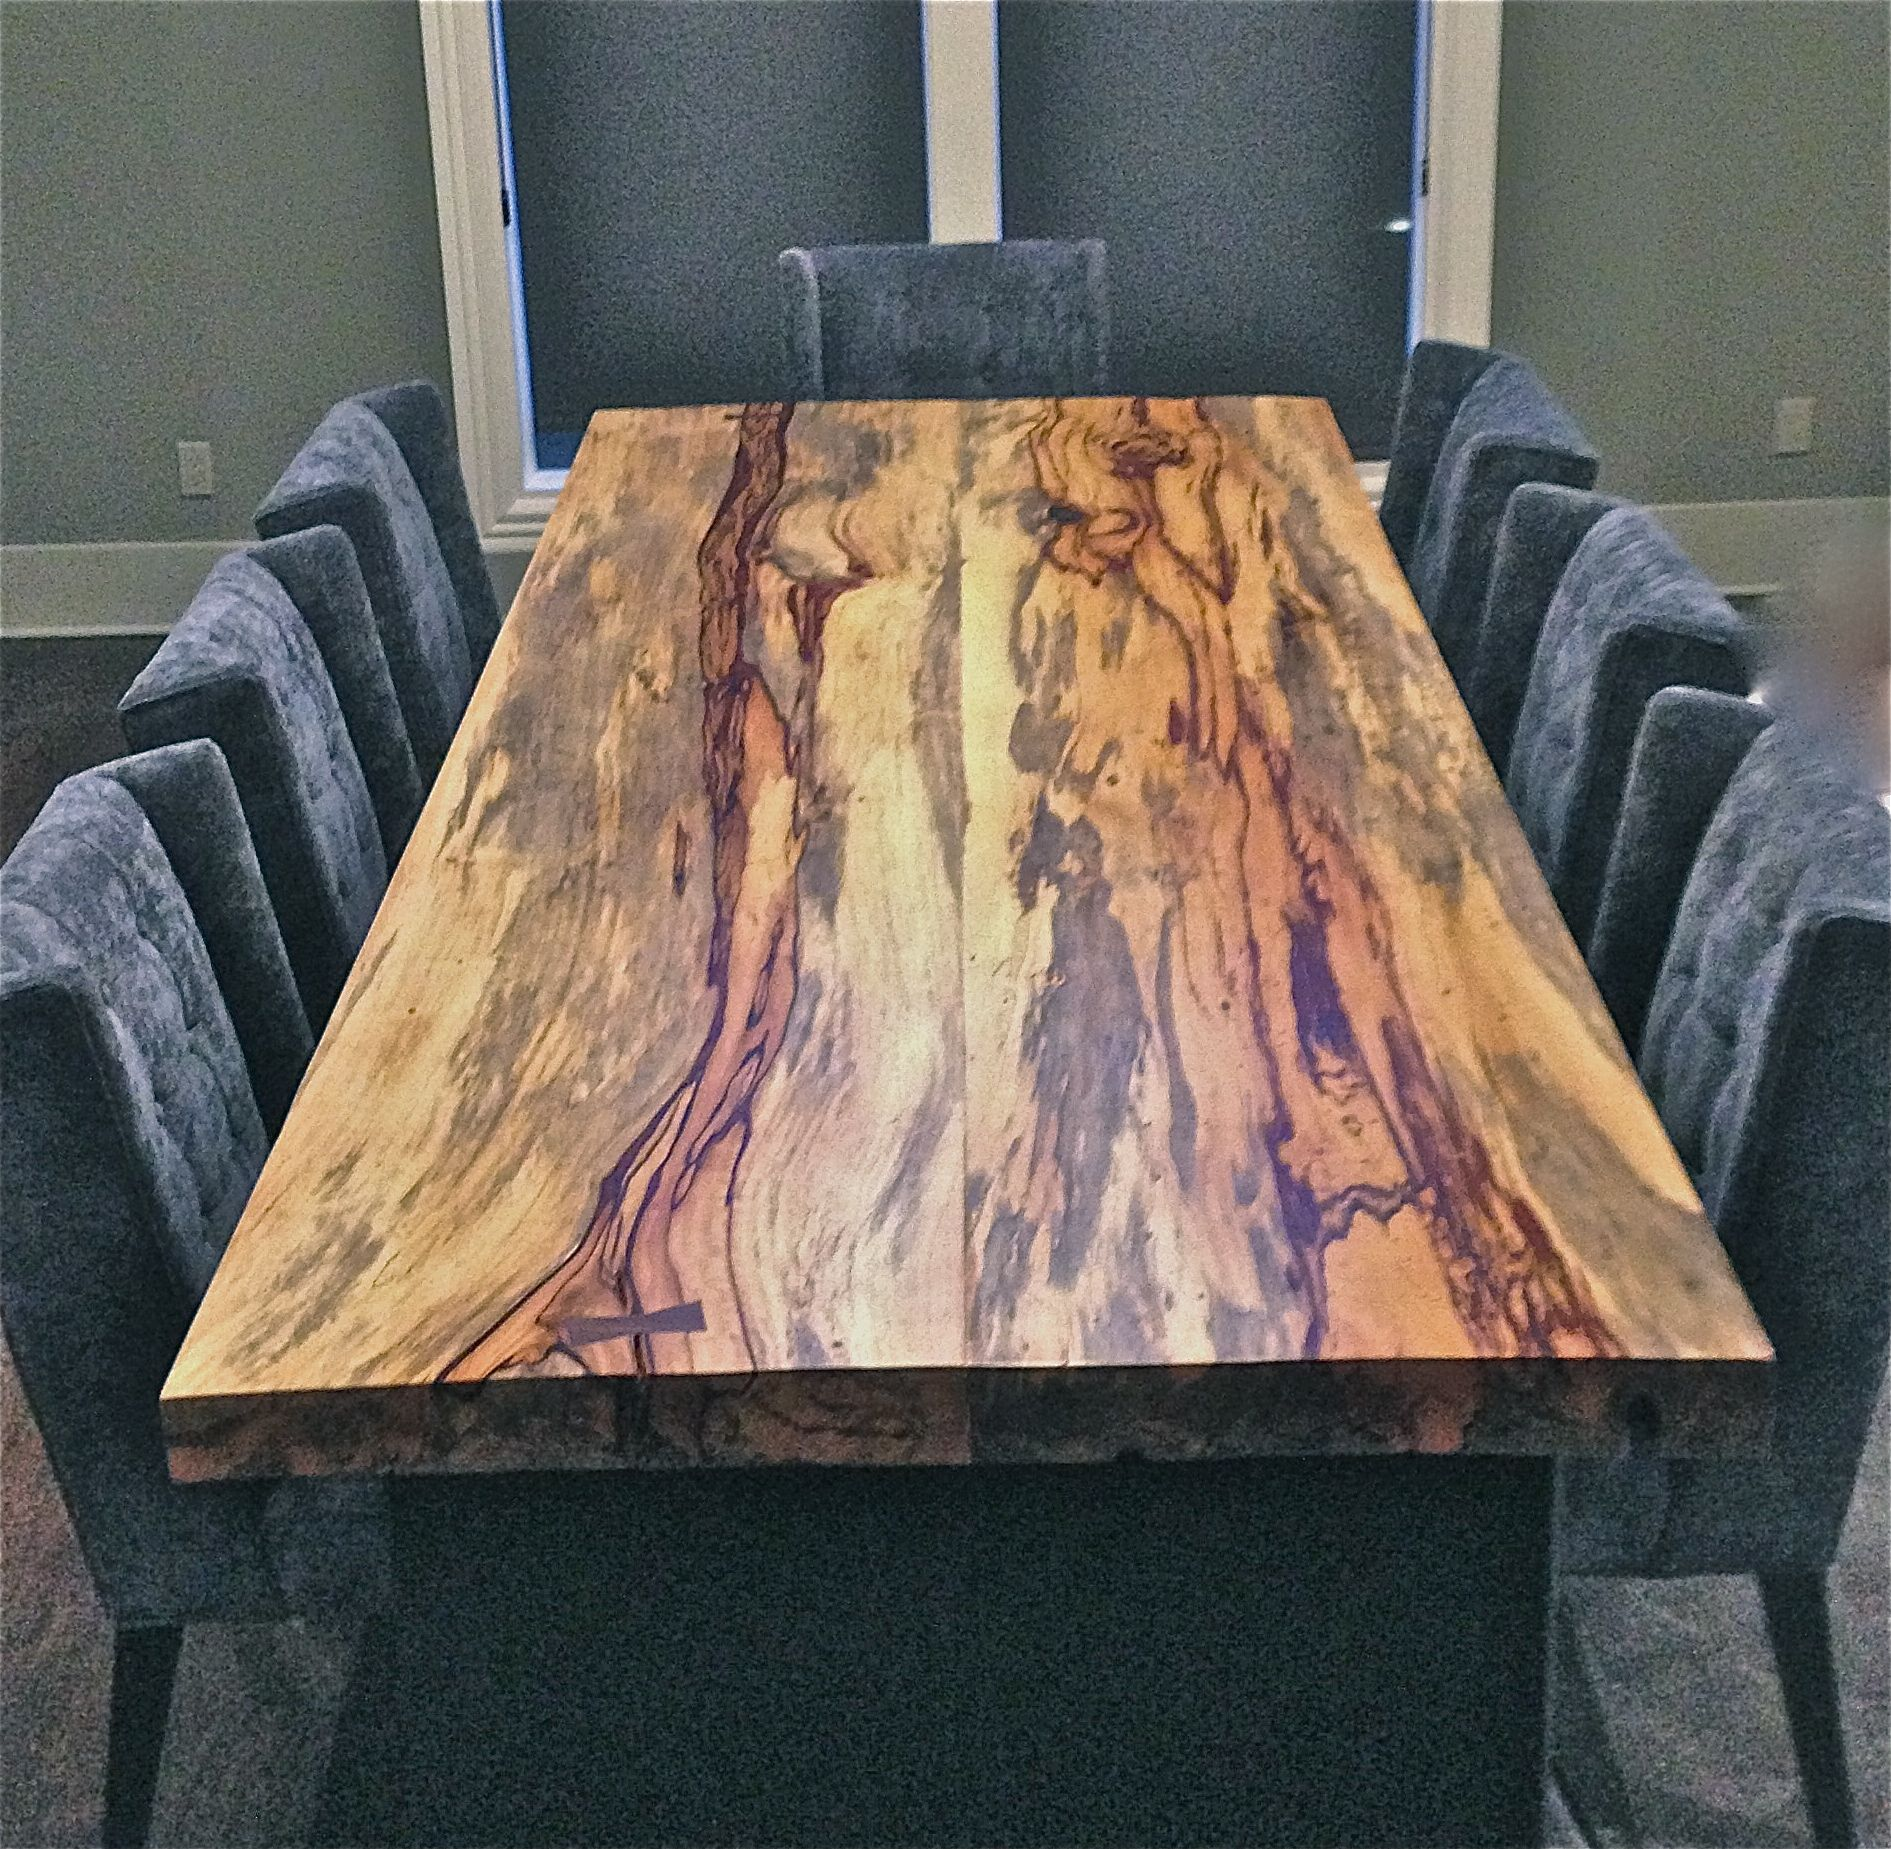 Table Resine Luxe Tamarin Wood Dining Table This Indonesian Species is Very Of 33 Inspirant Table Resine